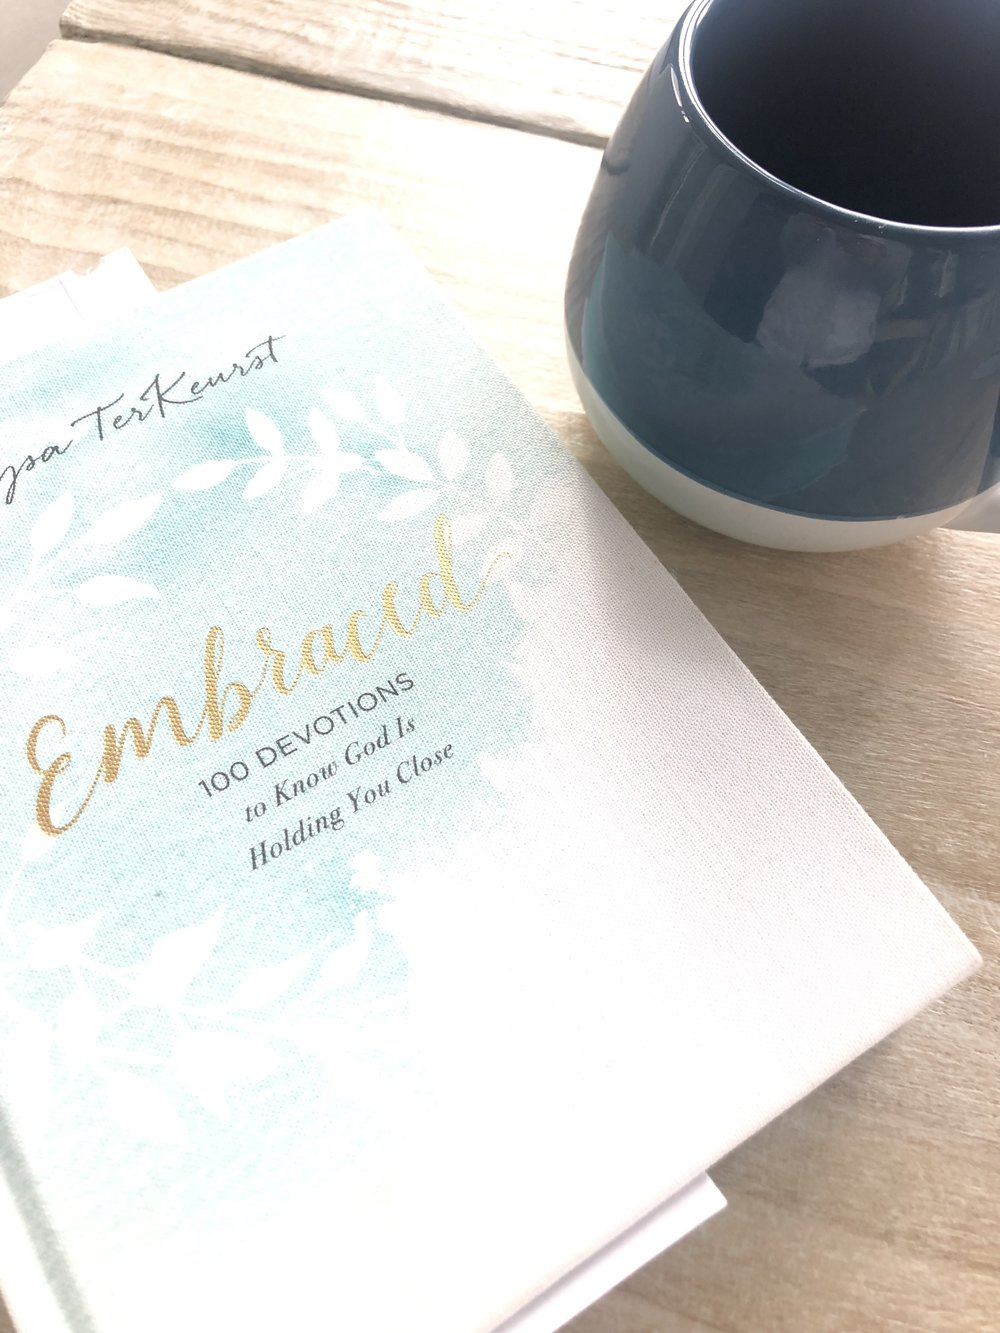 One of my favorite daily devotionals. So much good in this book! -